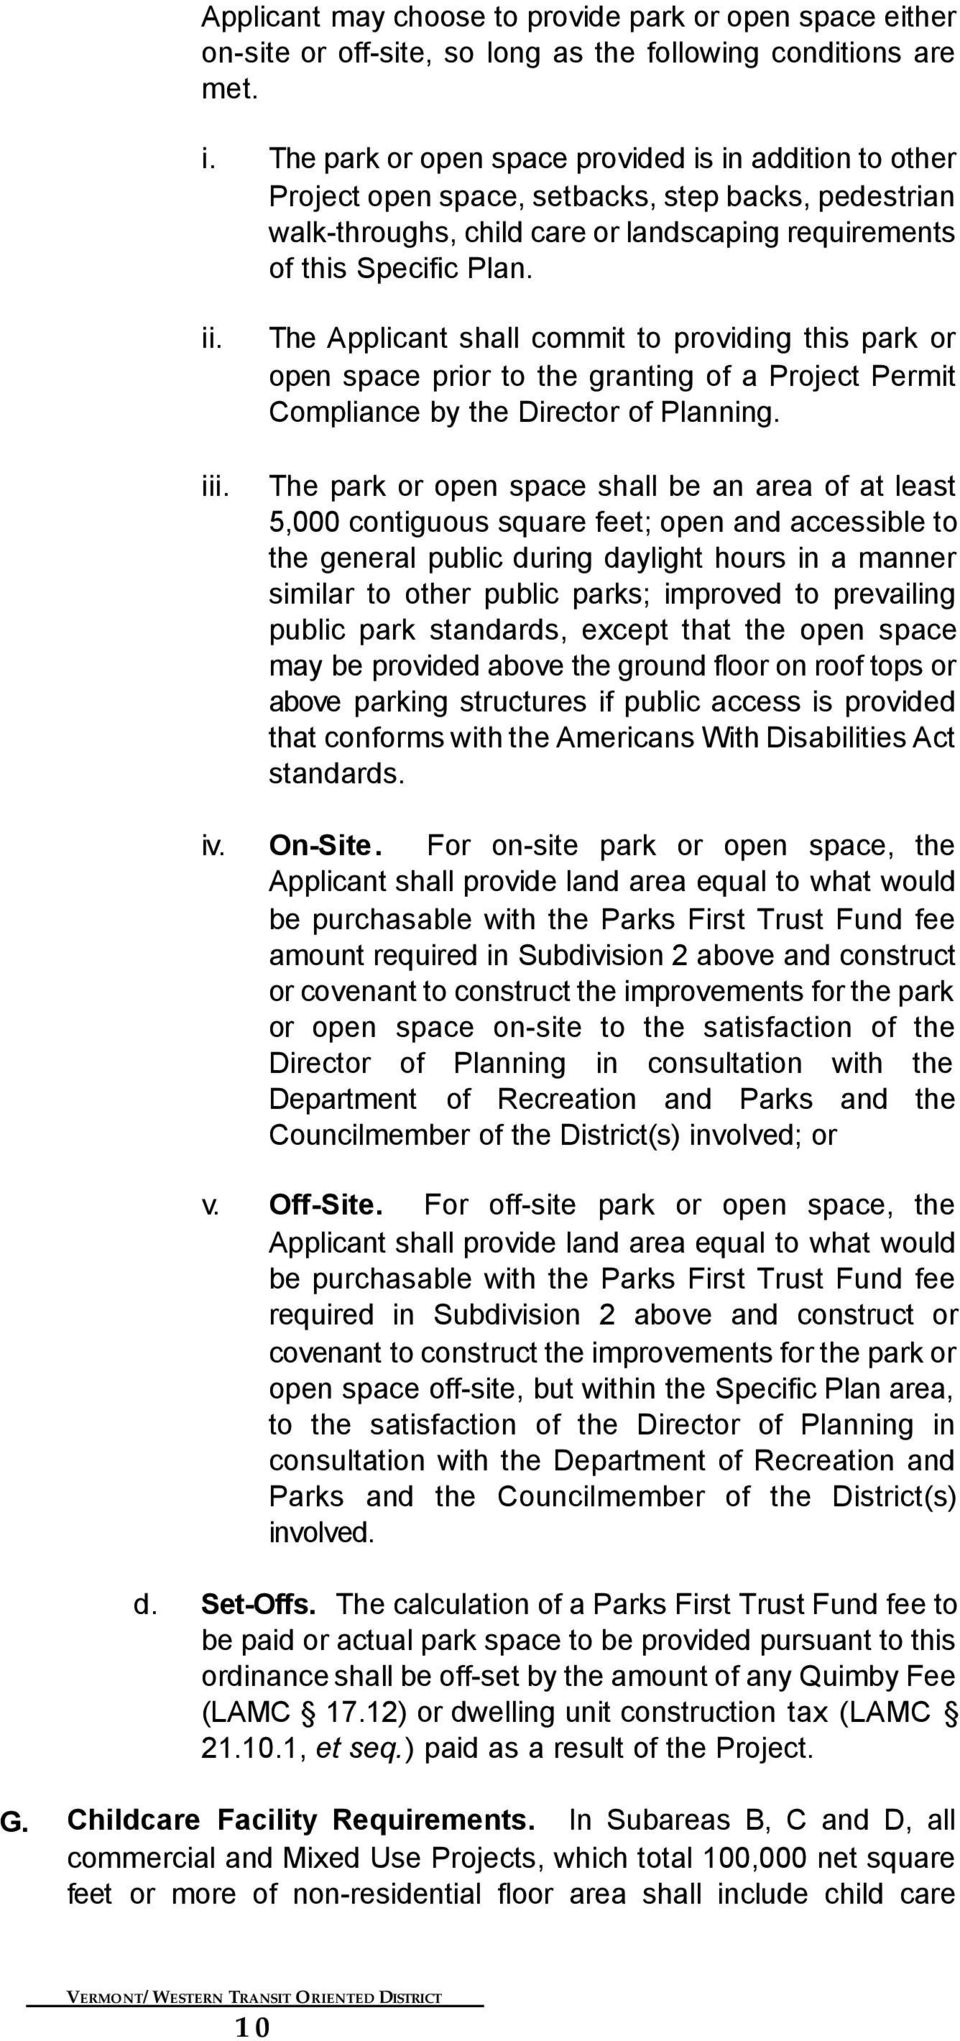 The Applicant shall commit to providing this park or open space prior to the granting of a Project Permit Compliance by the Director of Planning.